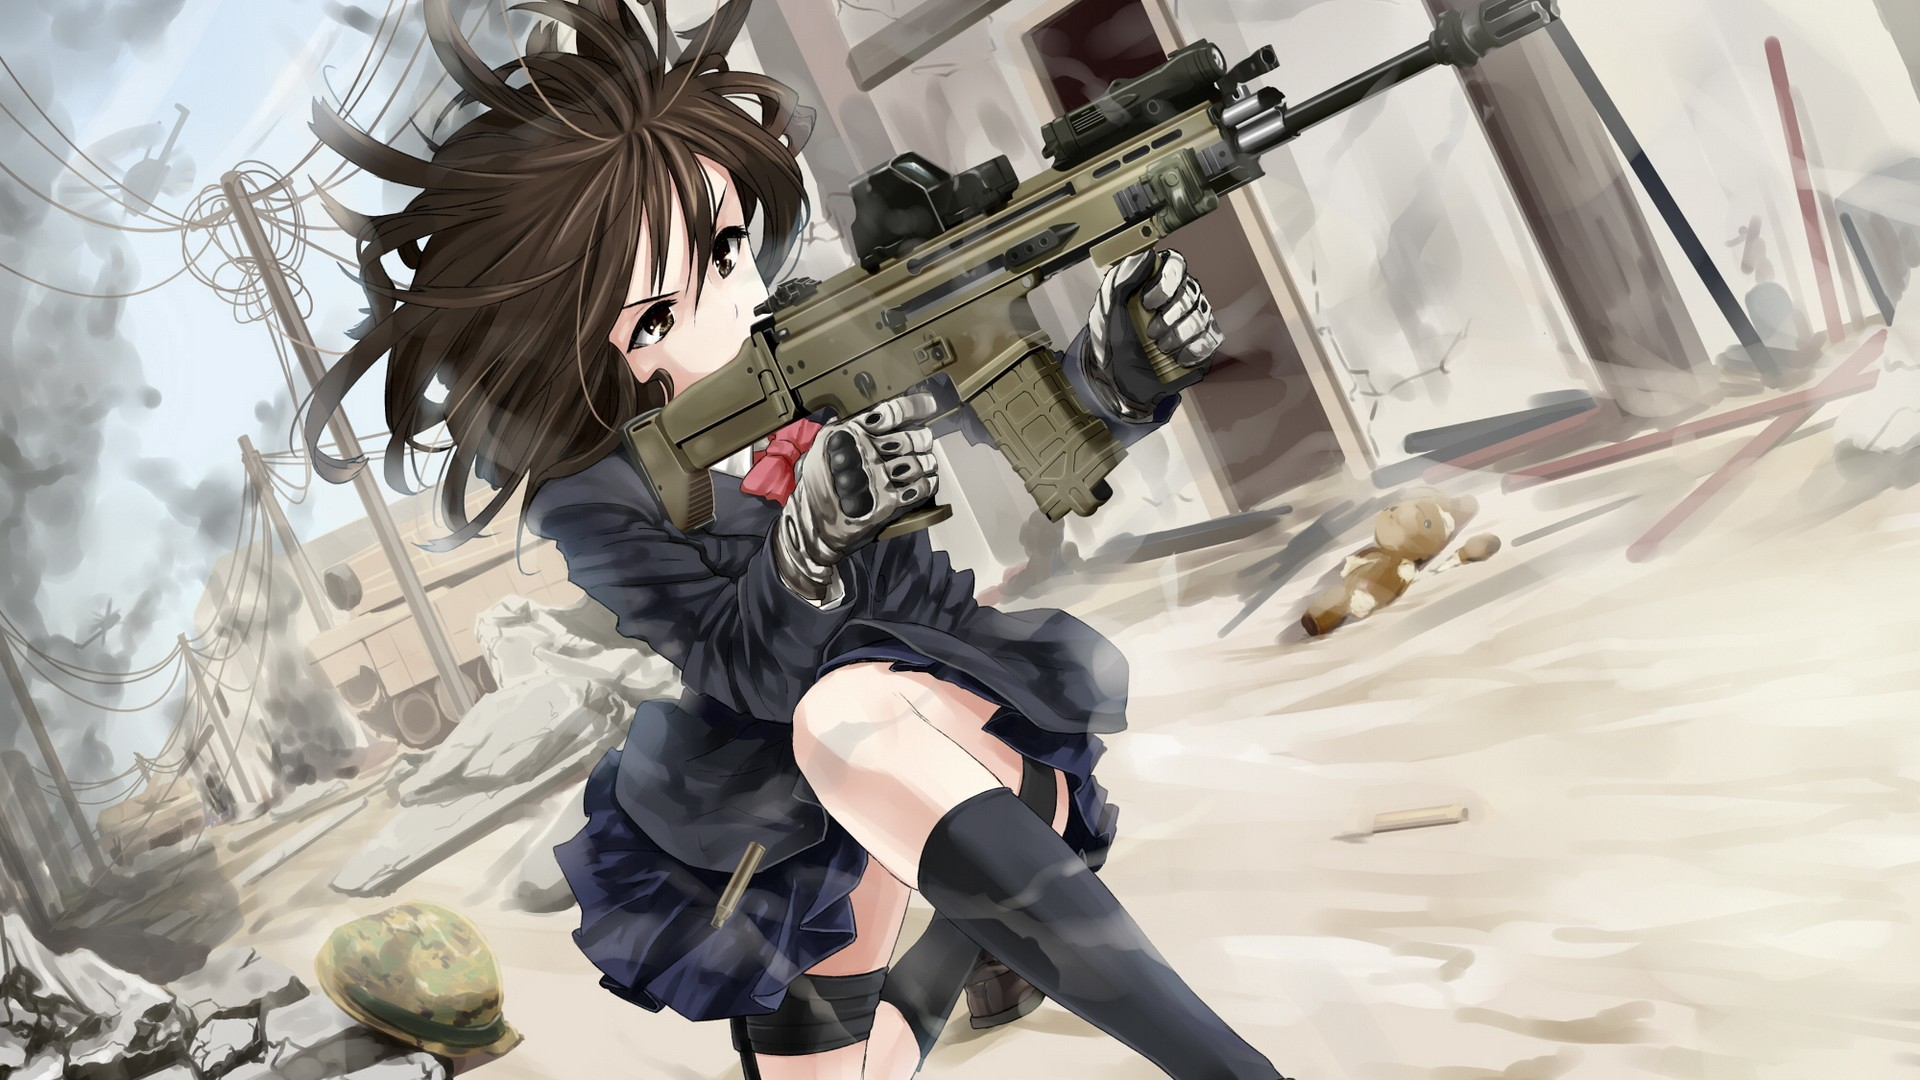 Res: 1920x1080, Anime Girl With Gun HD Wallpaper |  | ID:52529